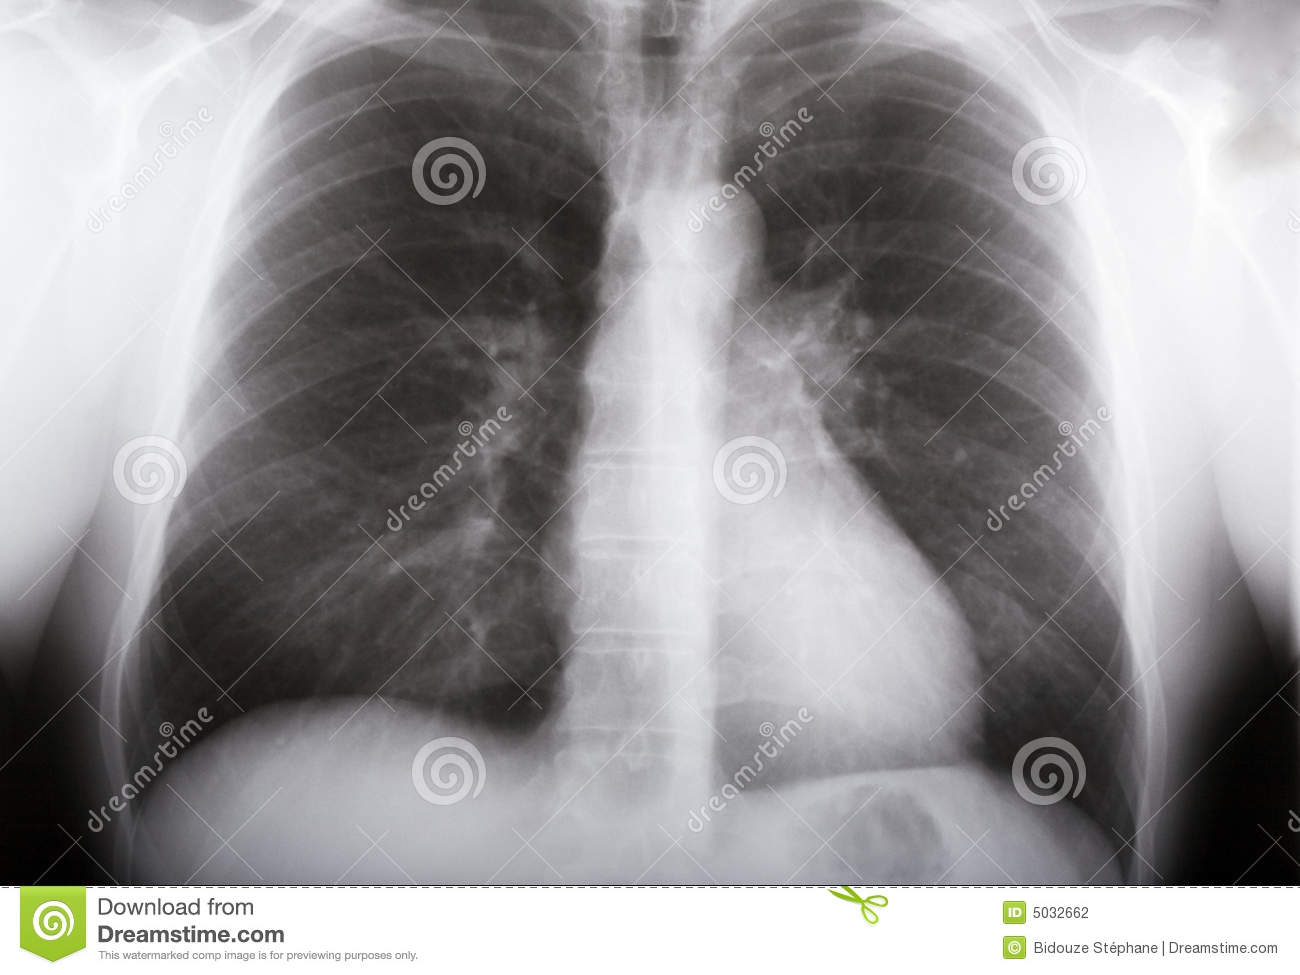 Lungs xray